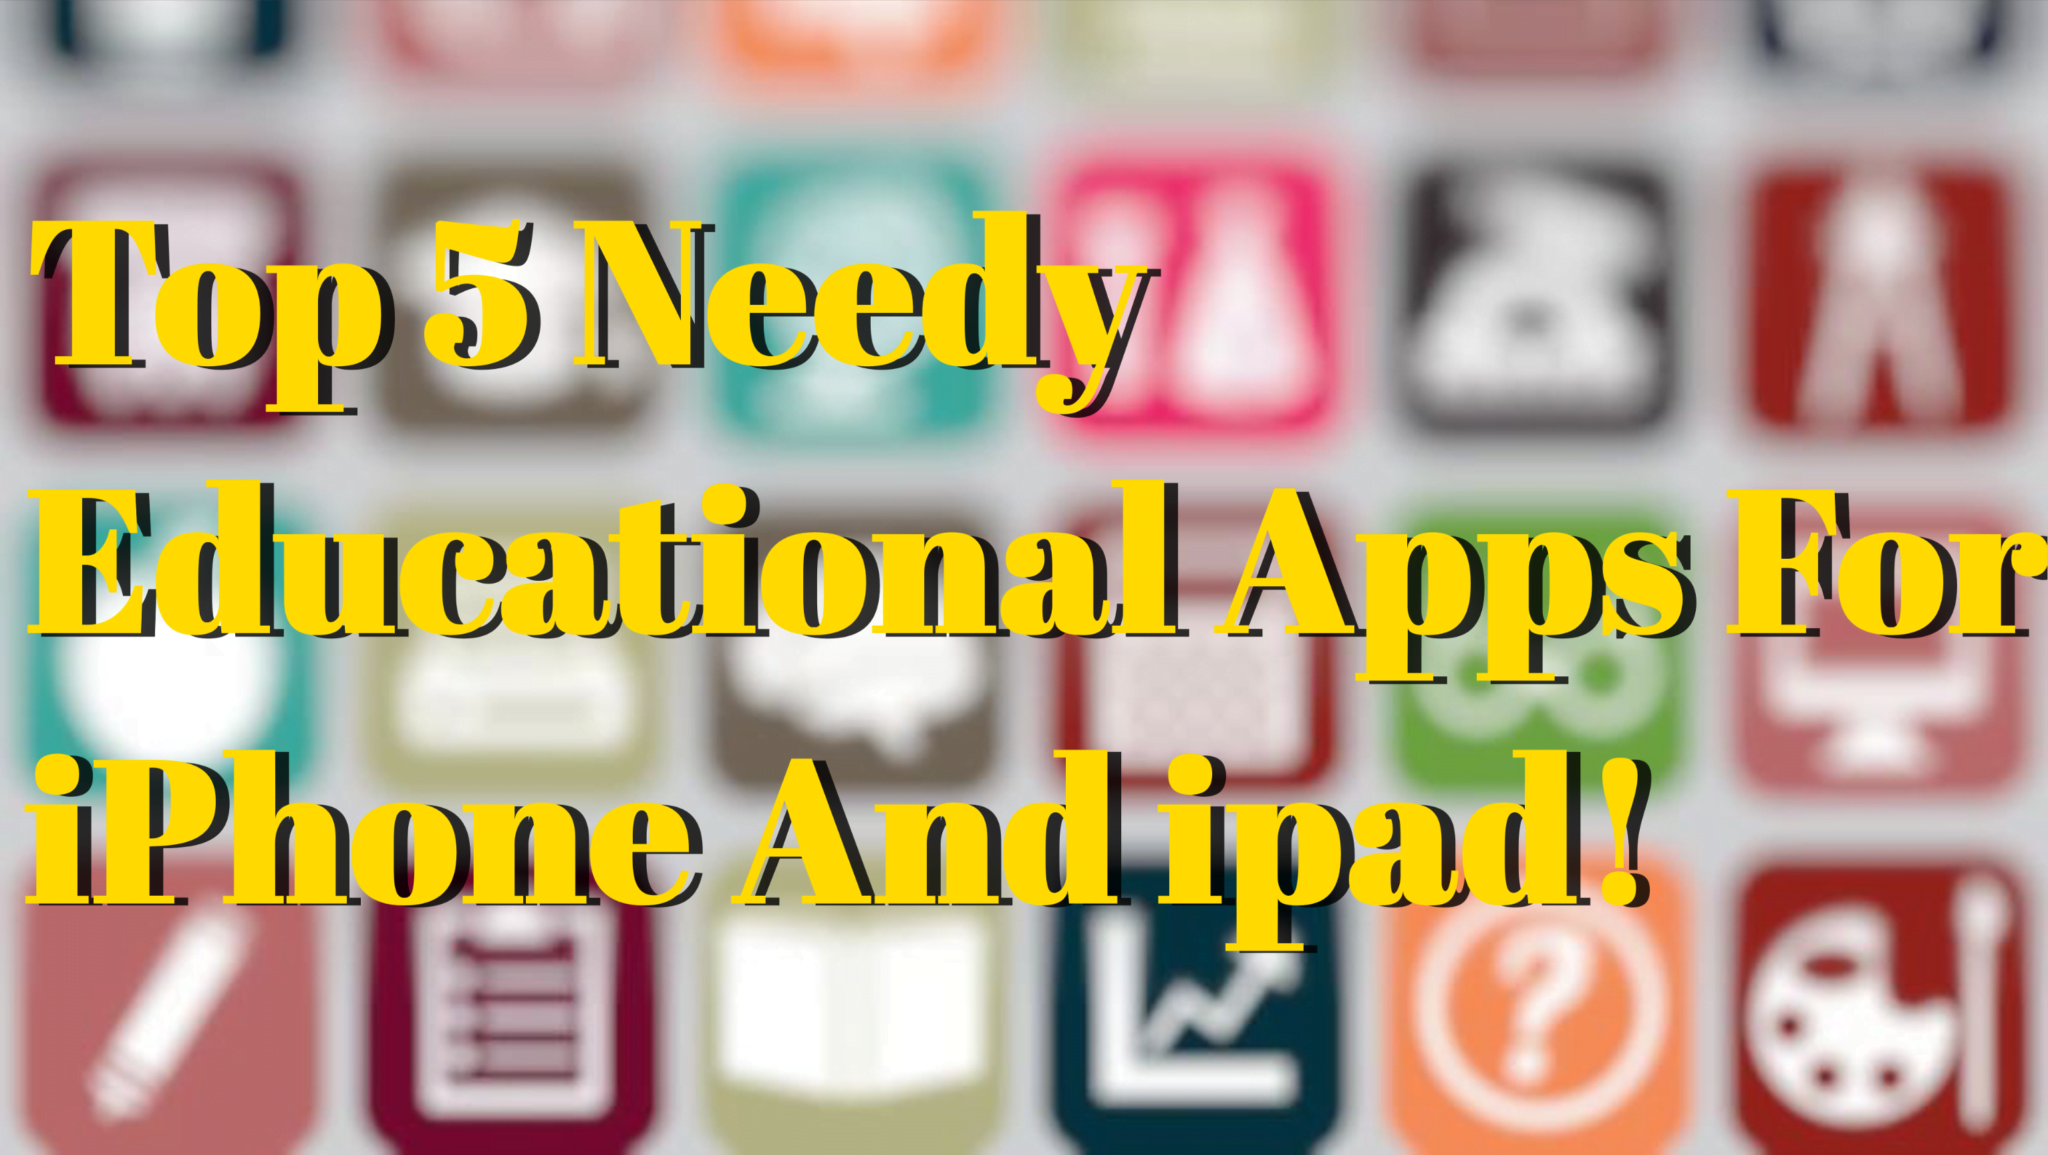 Top 5 Needy Educational Apps iPhone iPad You Must Have